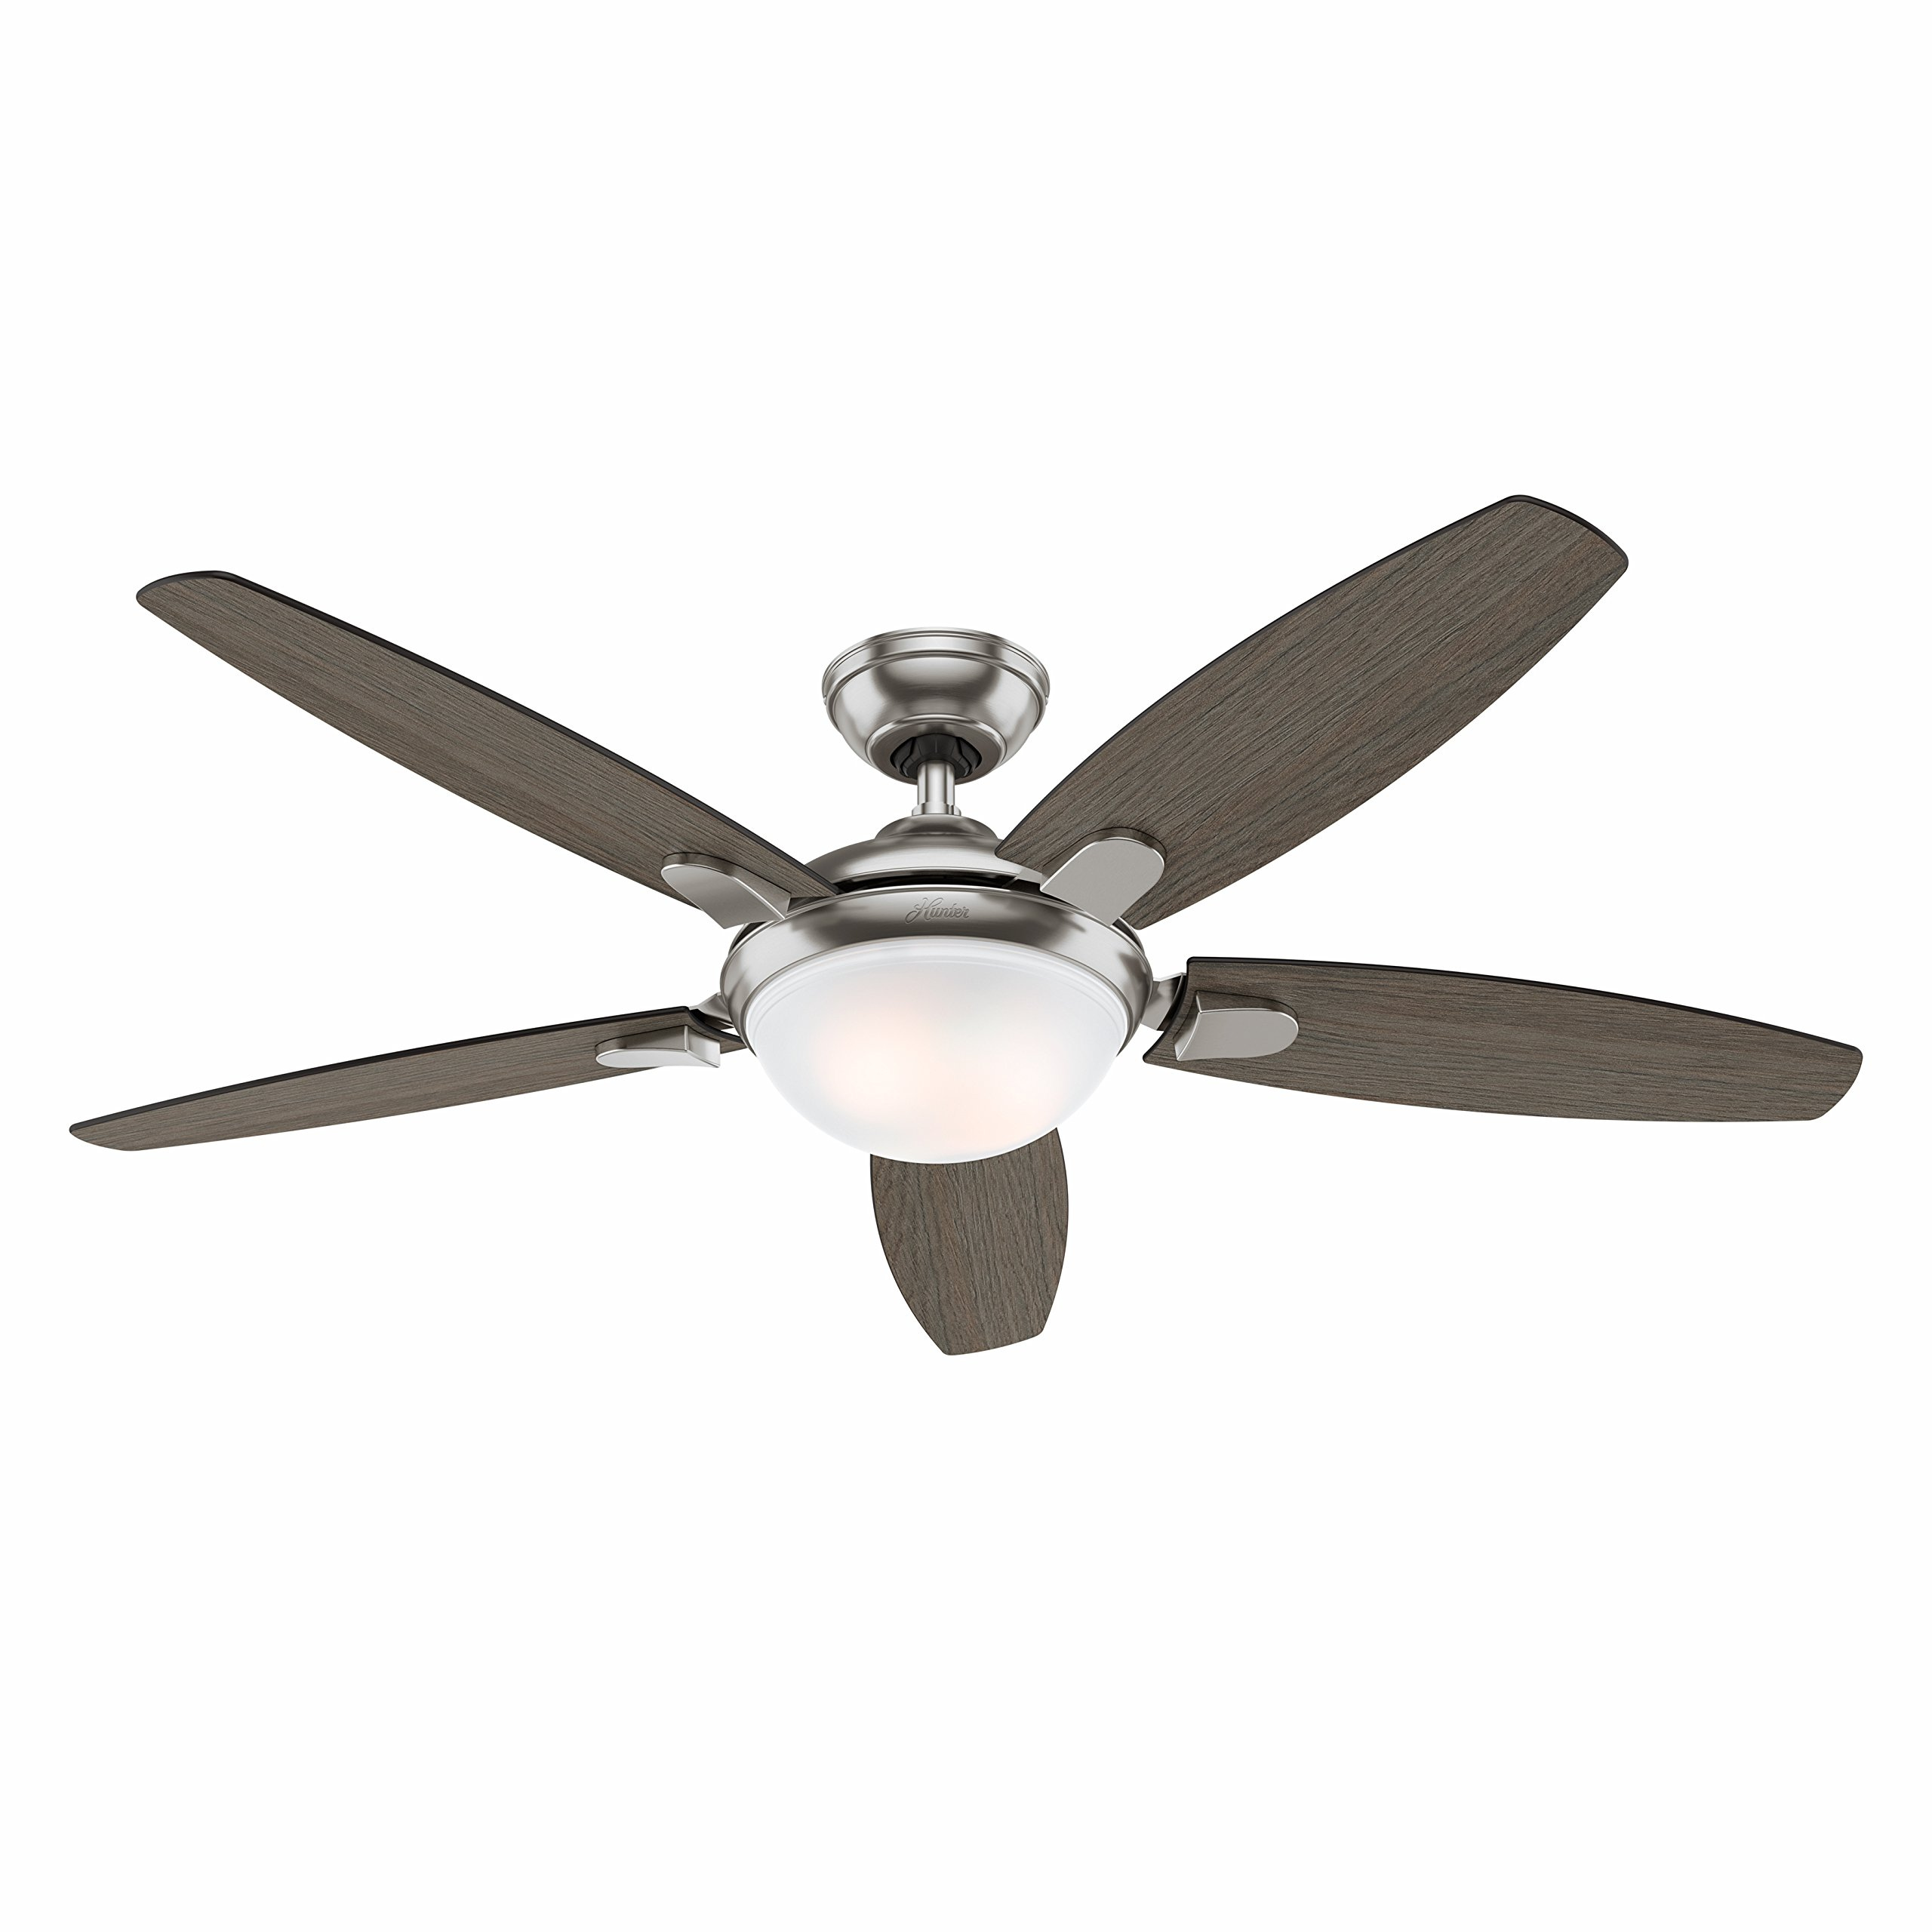 Hunter fan 54 contemporary ceiling fan in brushed nickel with led hunter fan 54 contemporary ceiling fan in brushed nickel with led light and remote certified refurbished ceiling fans appliances tibs mozeypictures Image collections